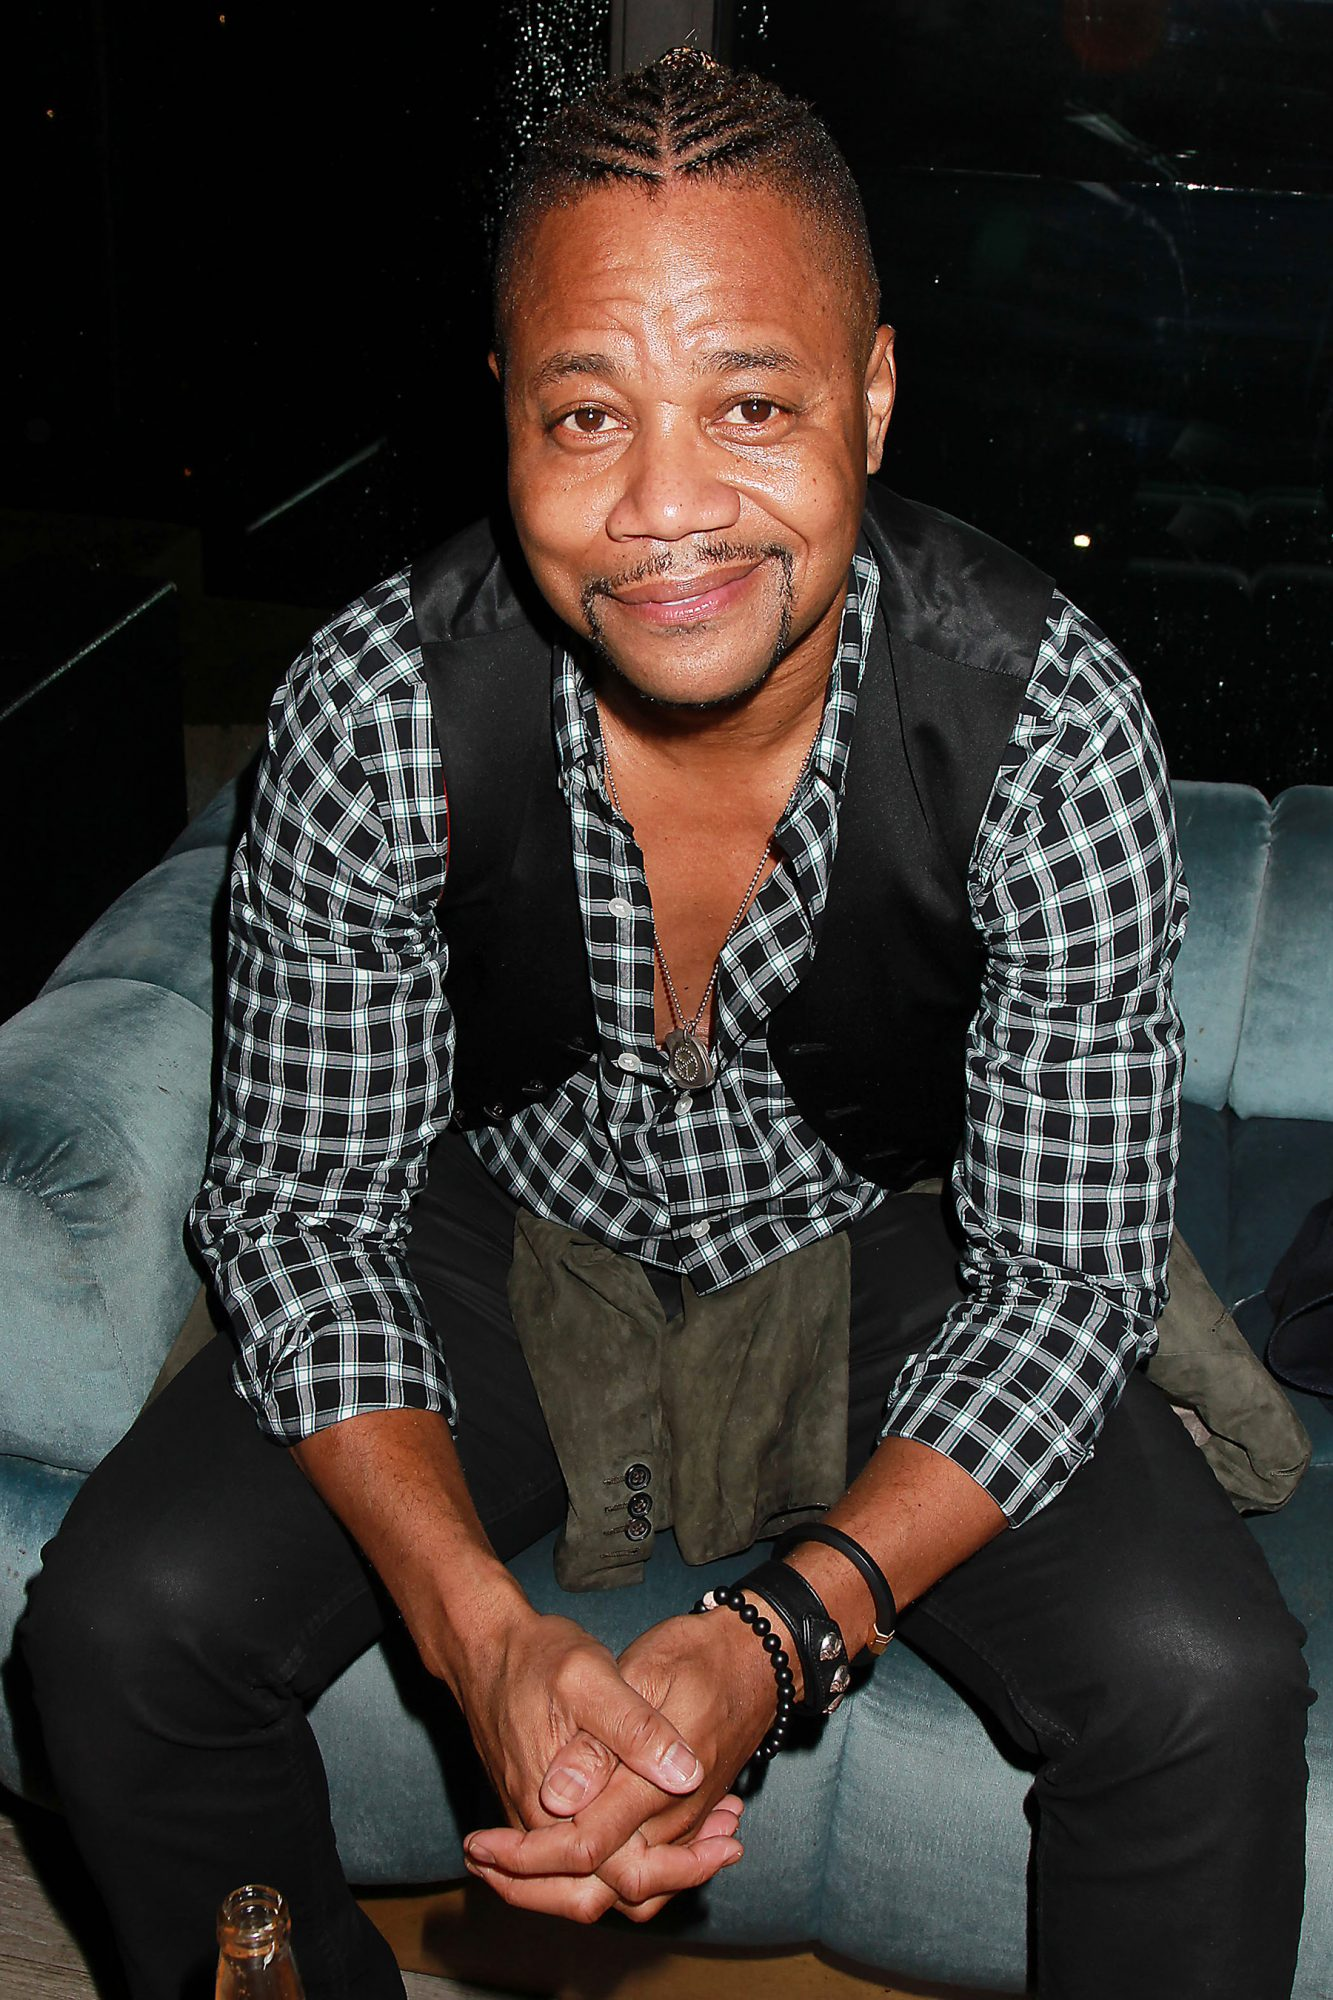 Cuba Gooding Jr. Magic Hour Rooftop Bar and Lounge located at 485 7th Avenue